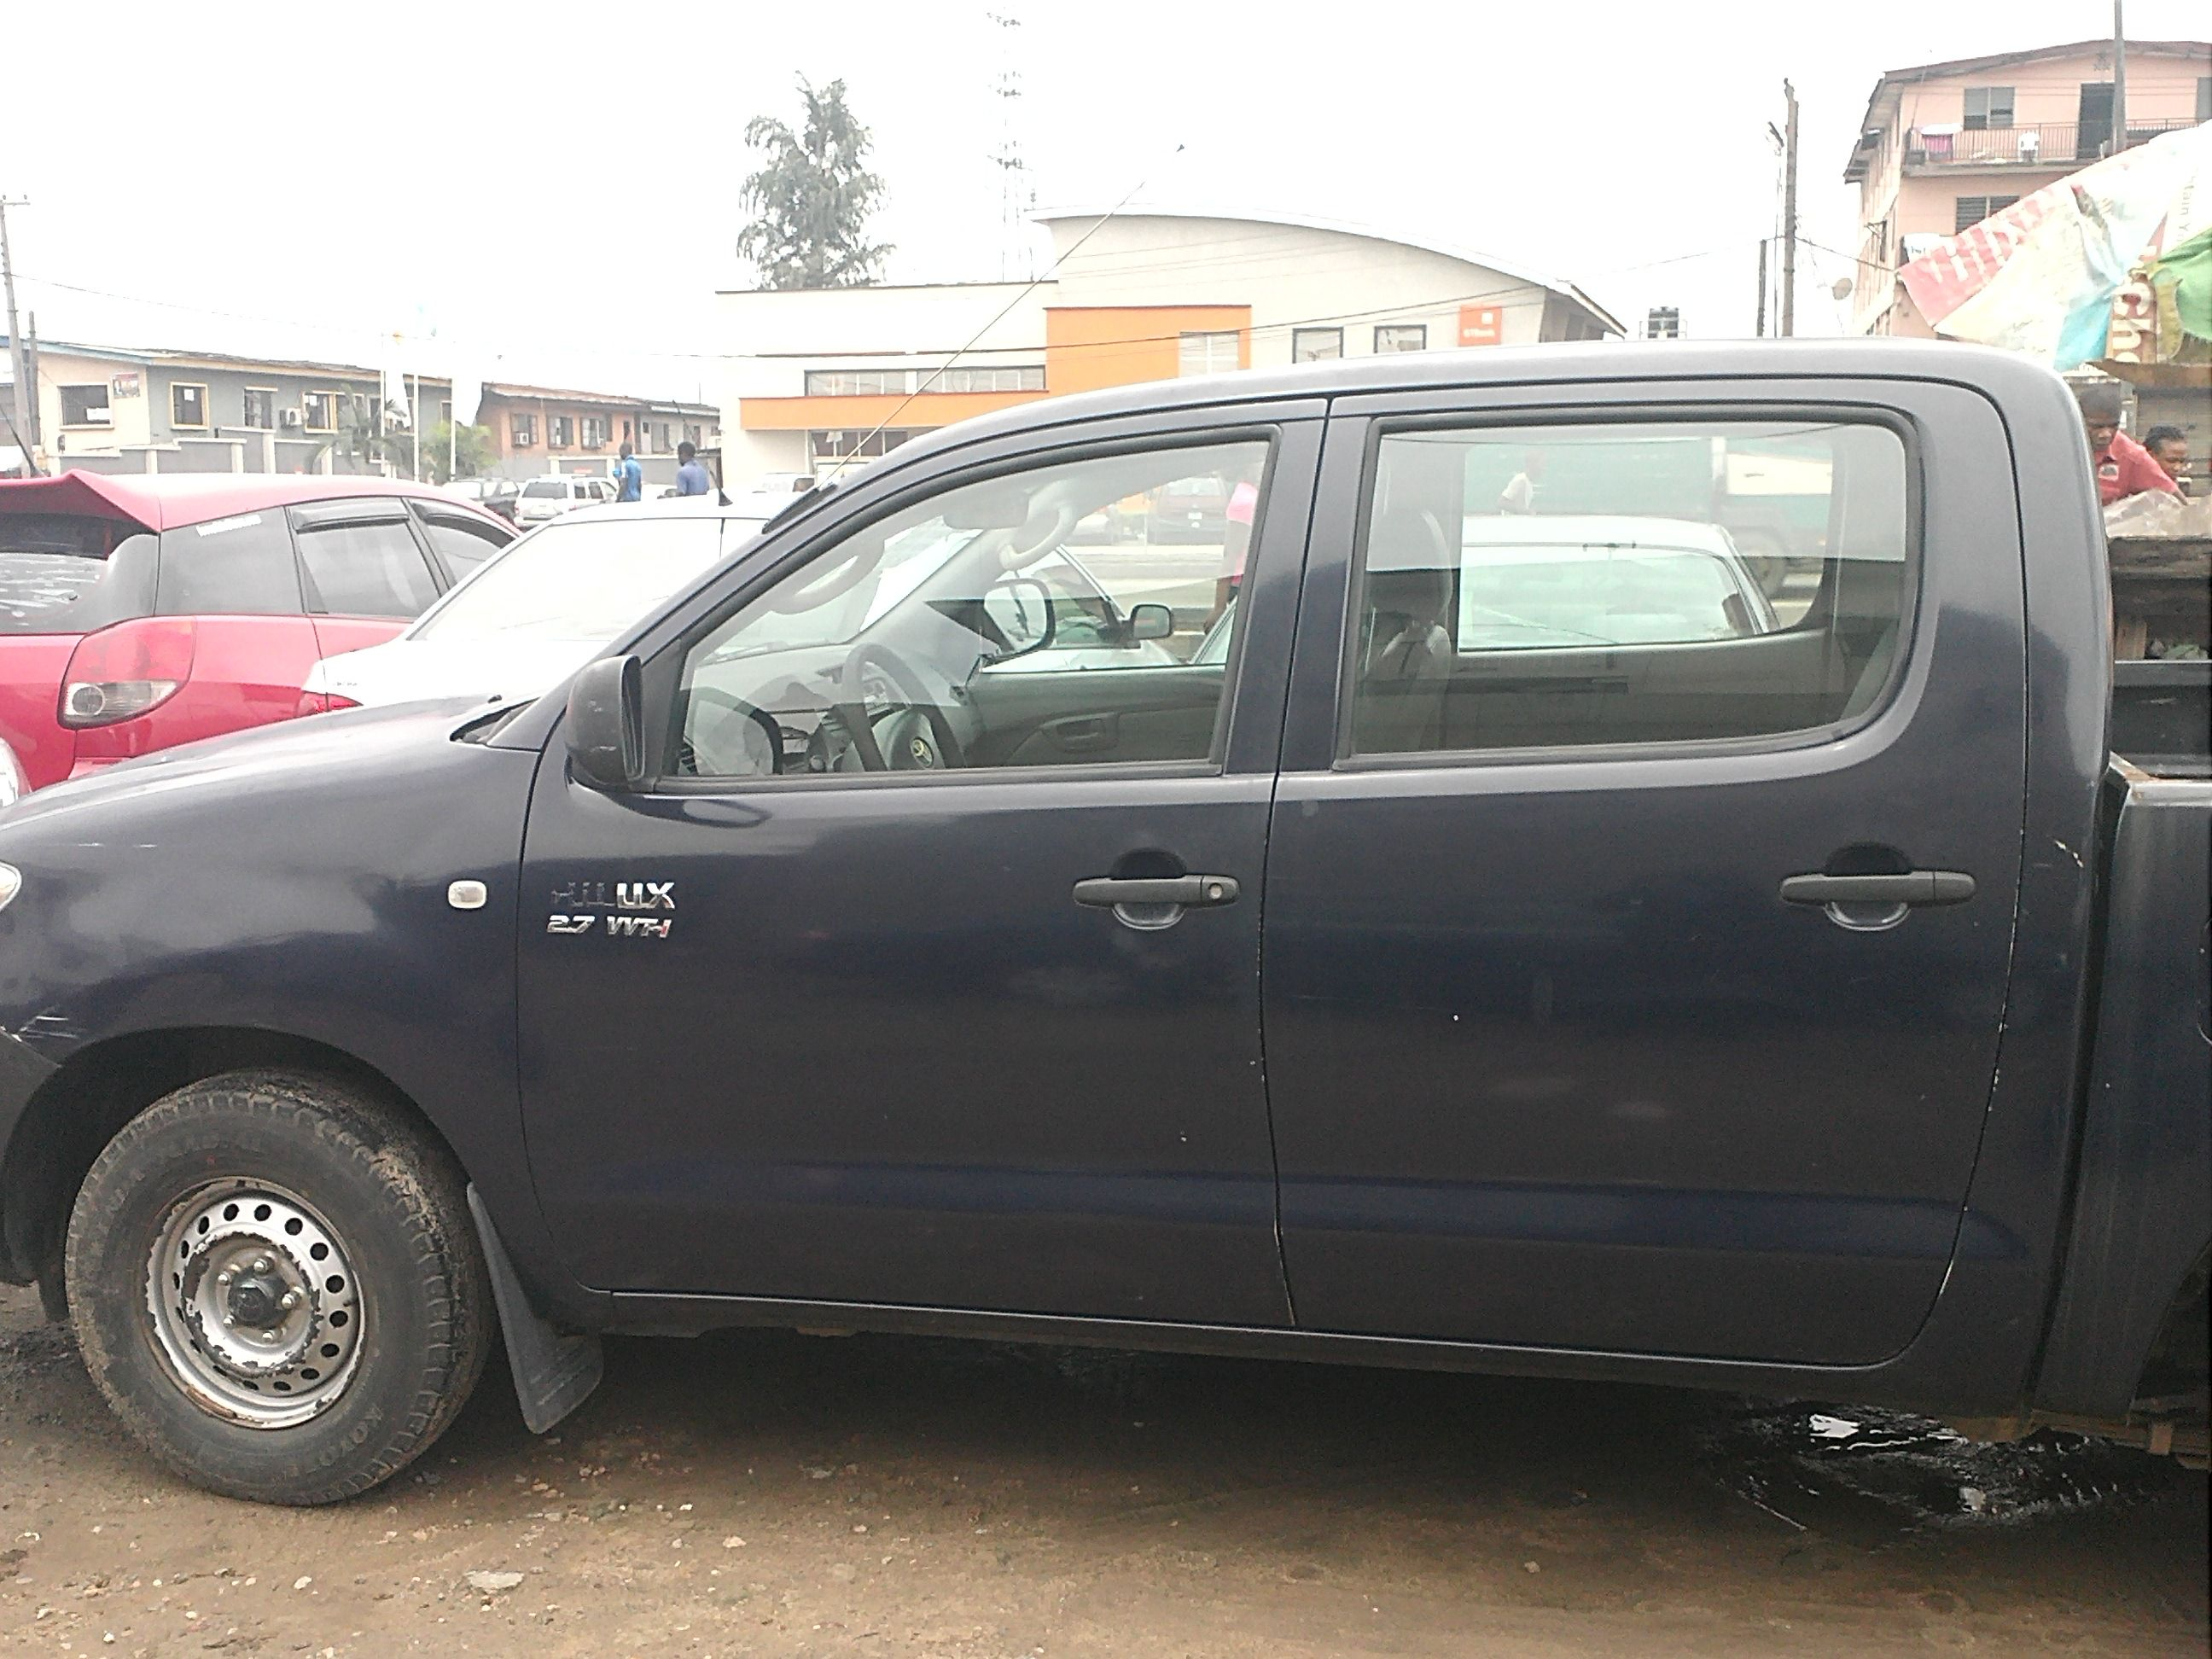 Clearance sales toyota hilux car just disposed by a